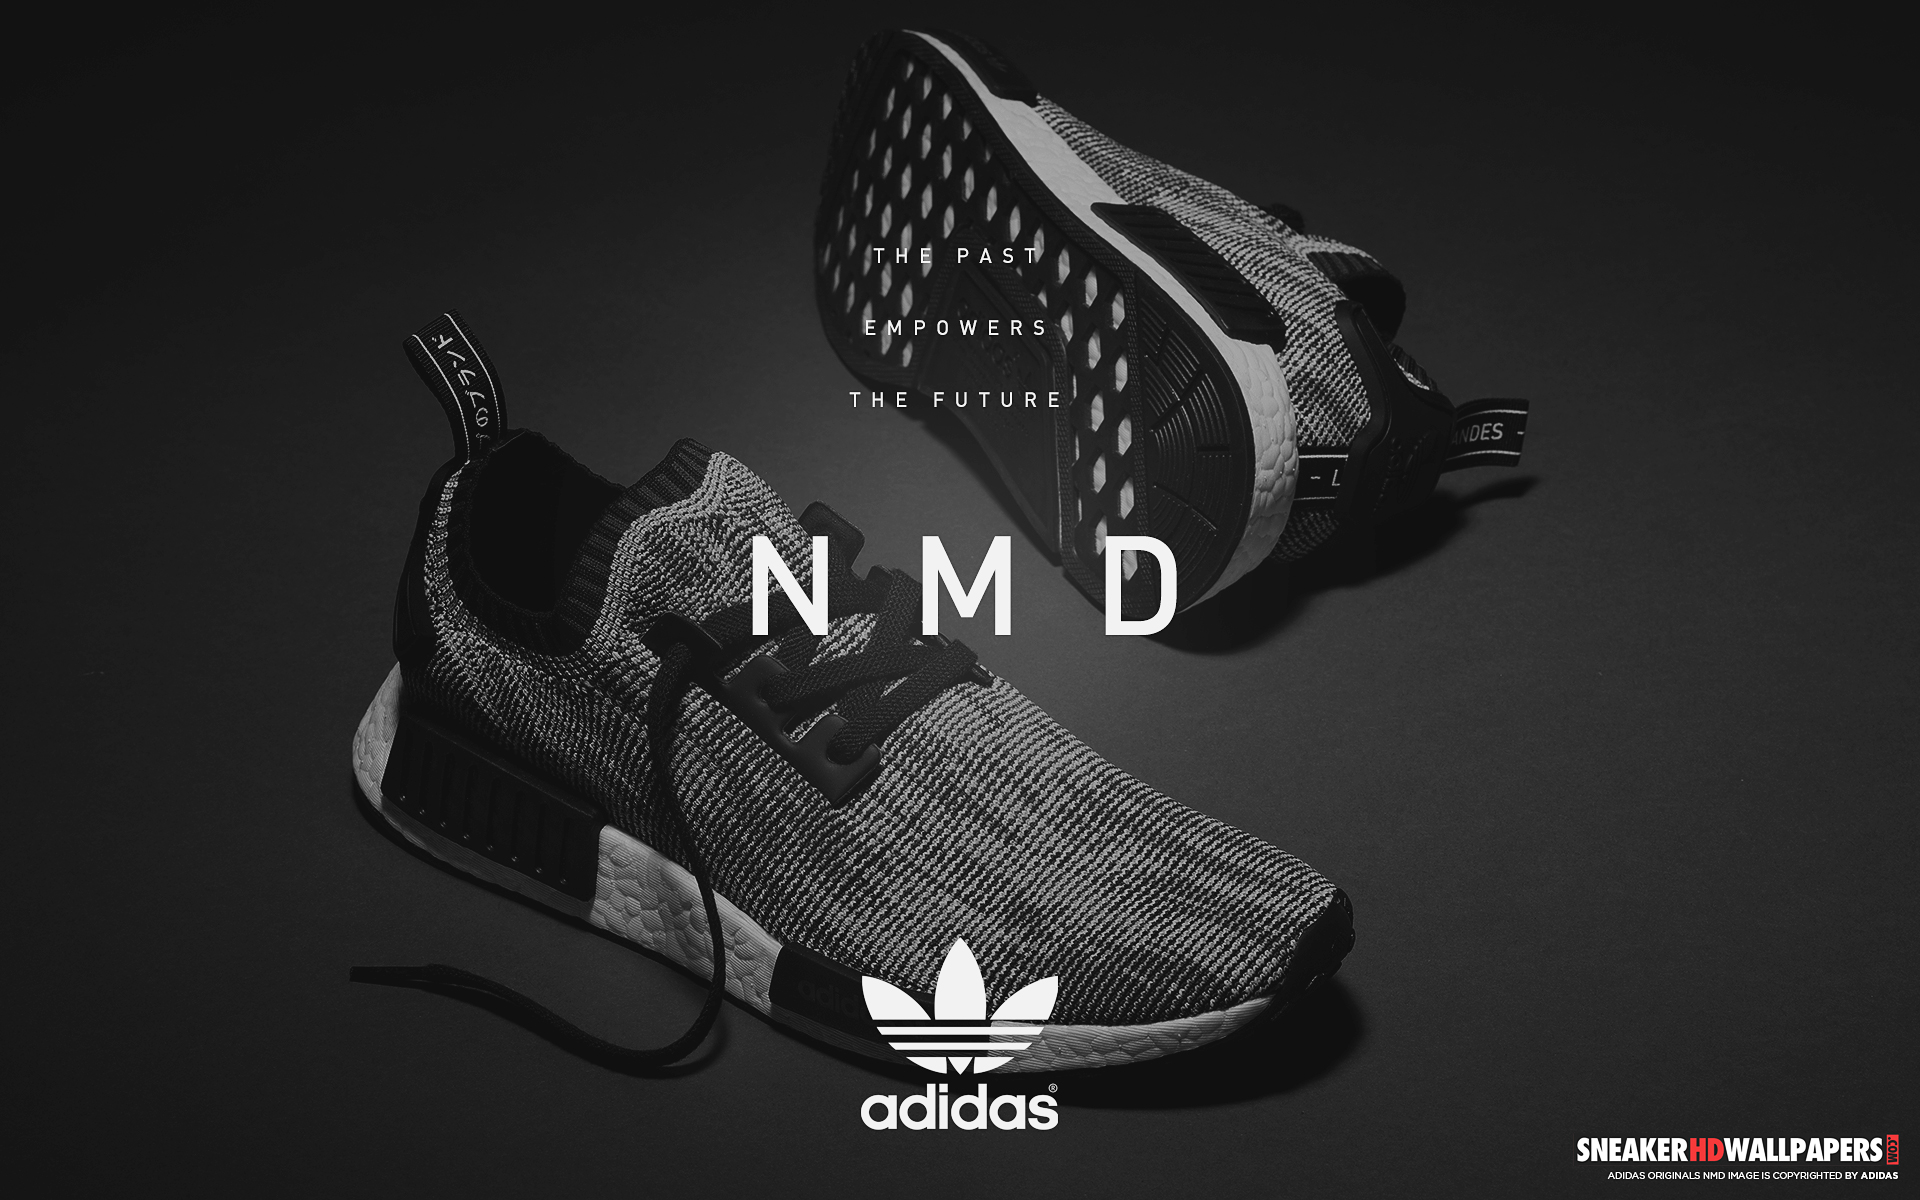 Adidas Basketball Wallpapers SneakerHDWallpaperscom Your Favorite Sneakers In HD And 1920x1200